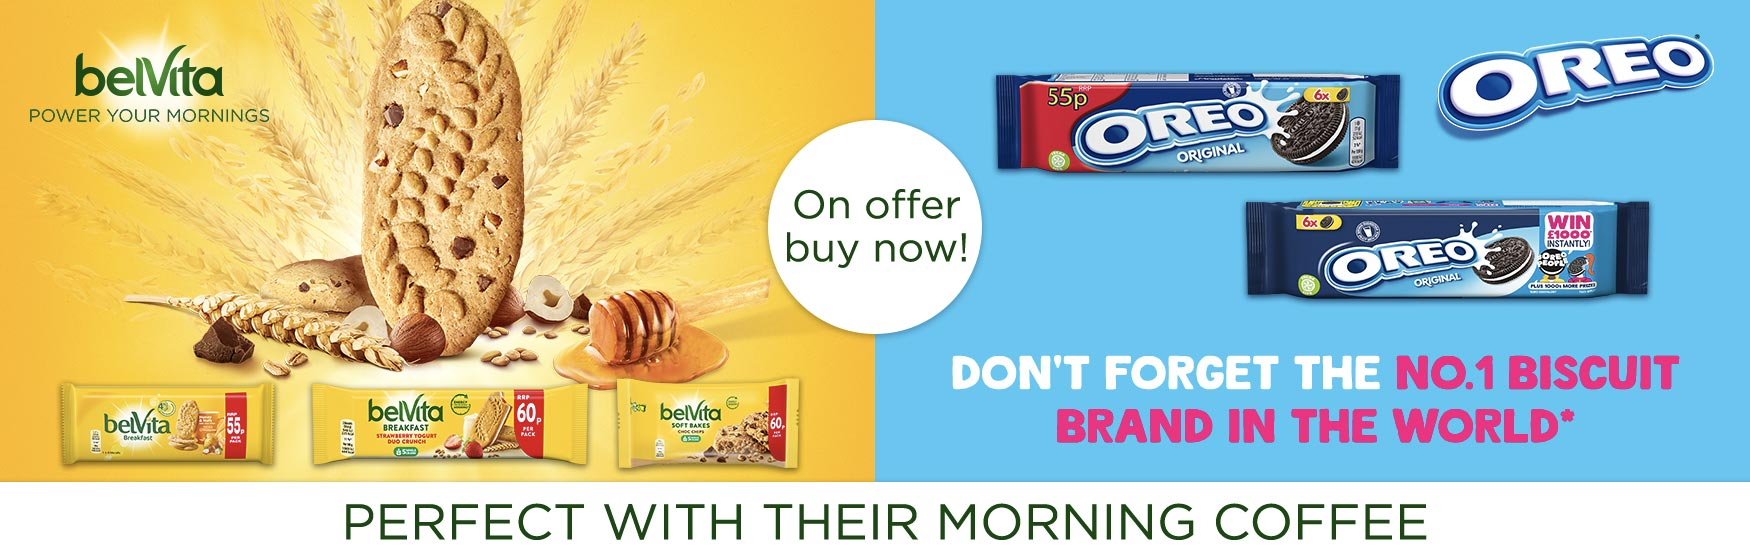 Belvita and Oreo - Perfect with their morning coffee